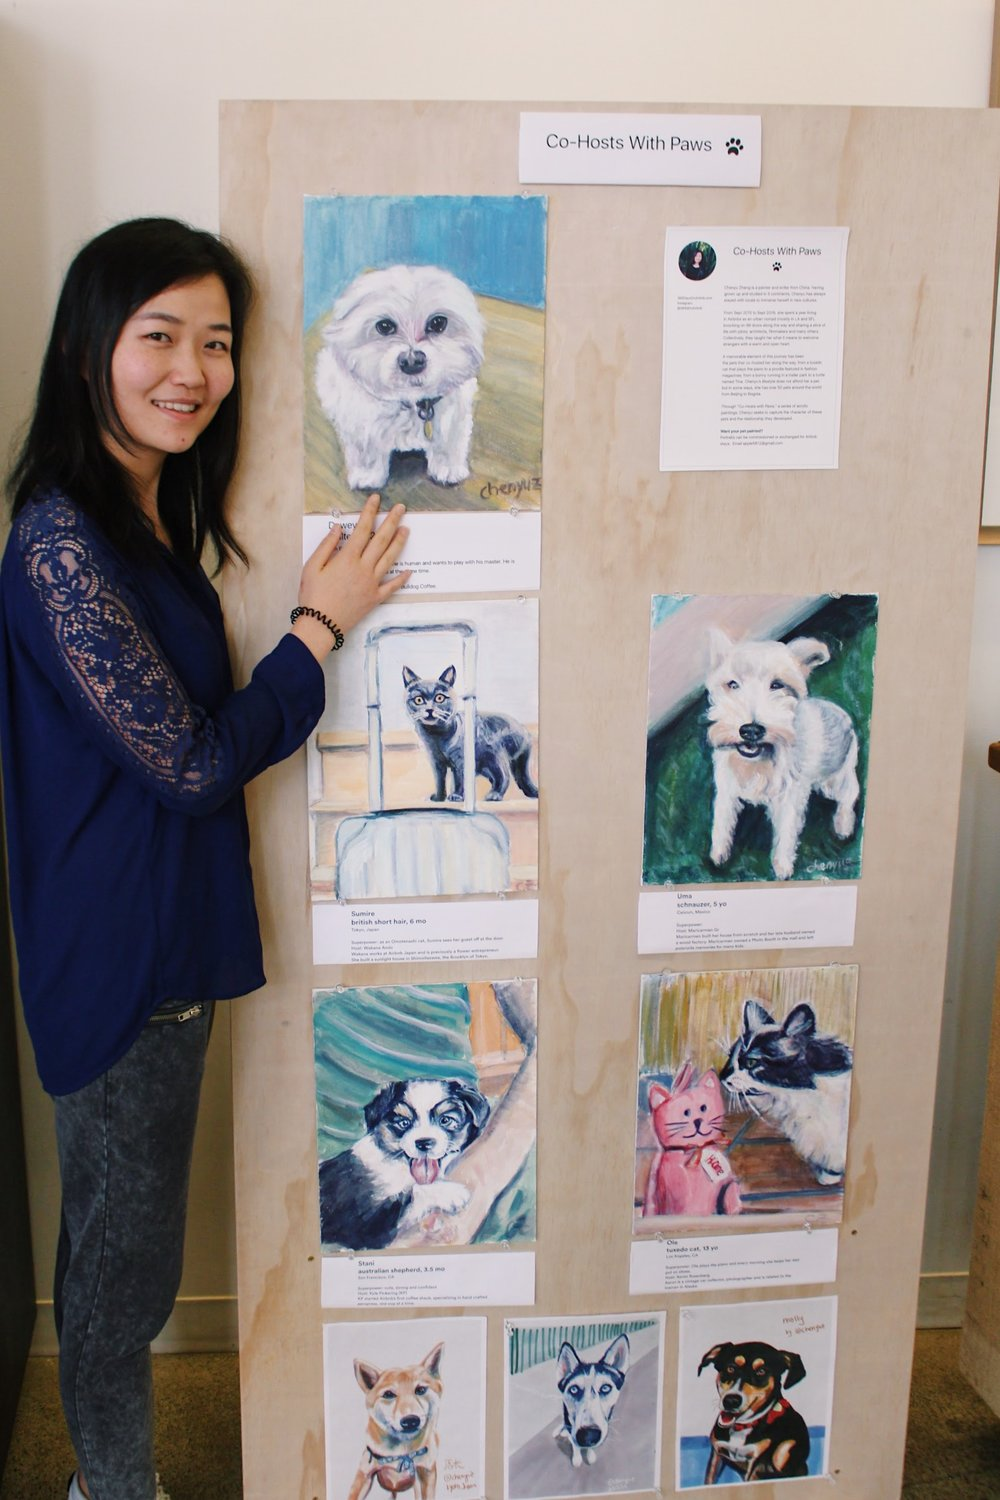 Co Hosts with Paws, a series of acrylic paintings of pets that co-hosted Chenyu along the journey.  On display at the Airbnb HQ.